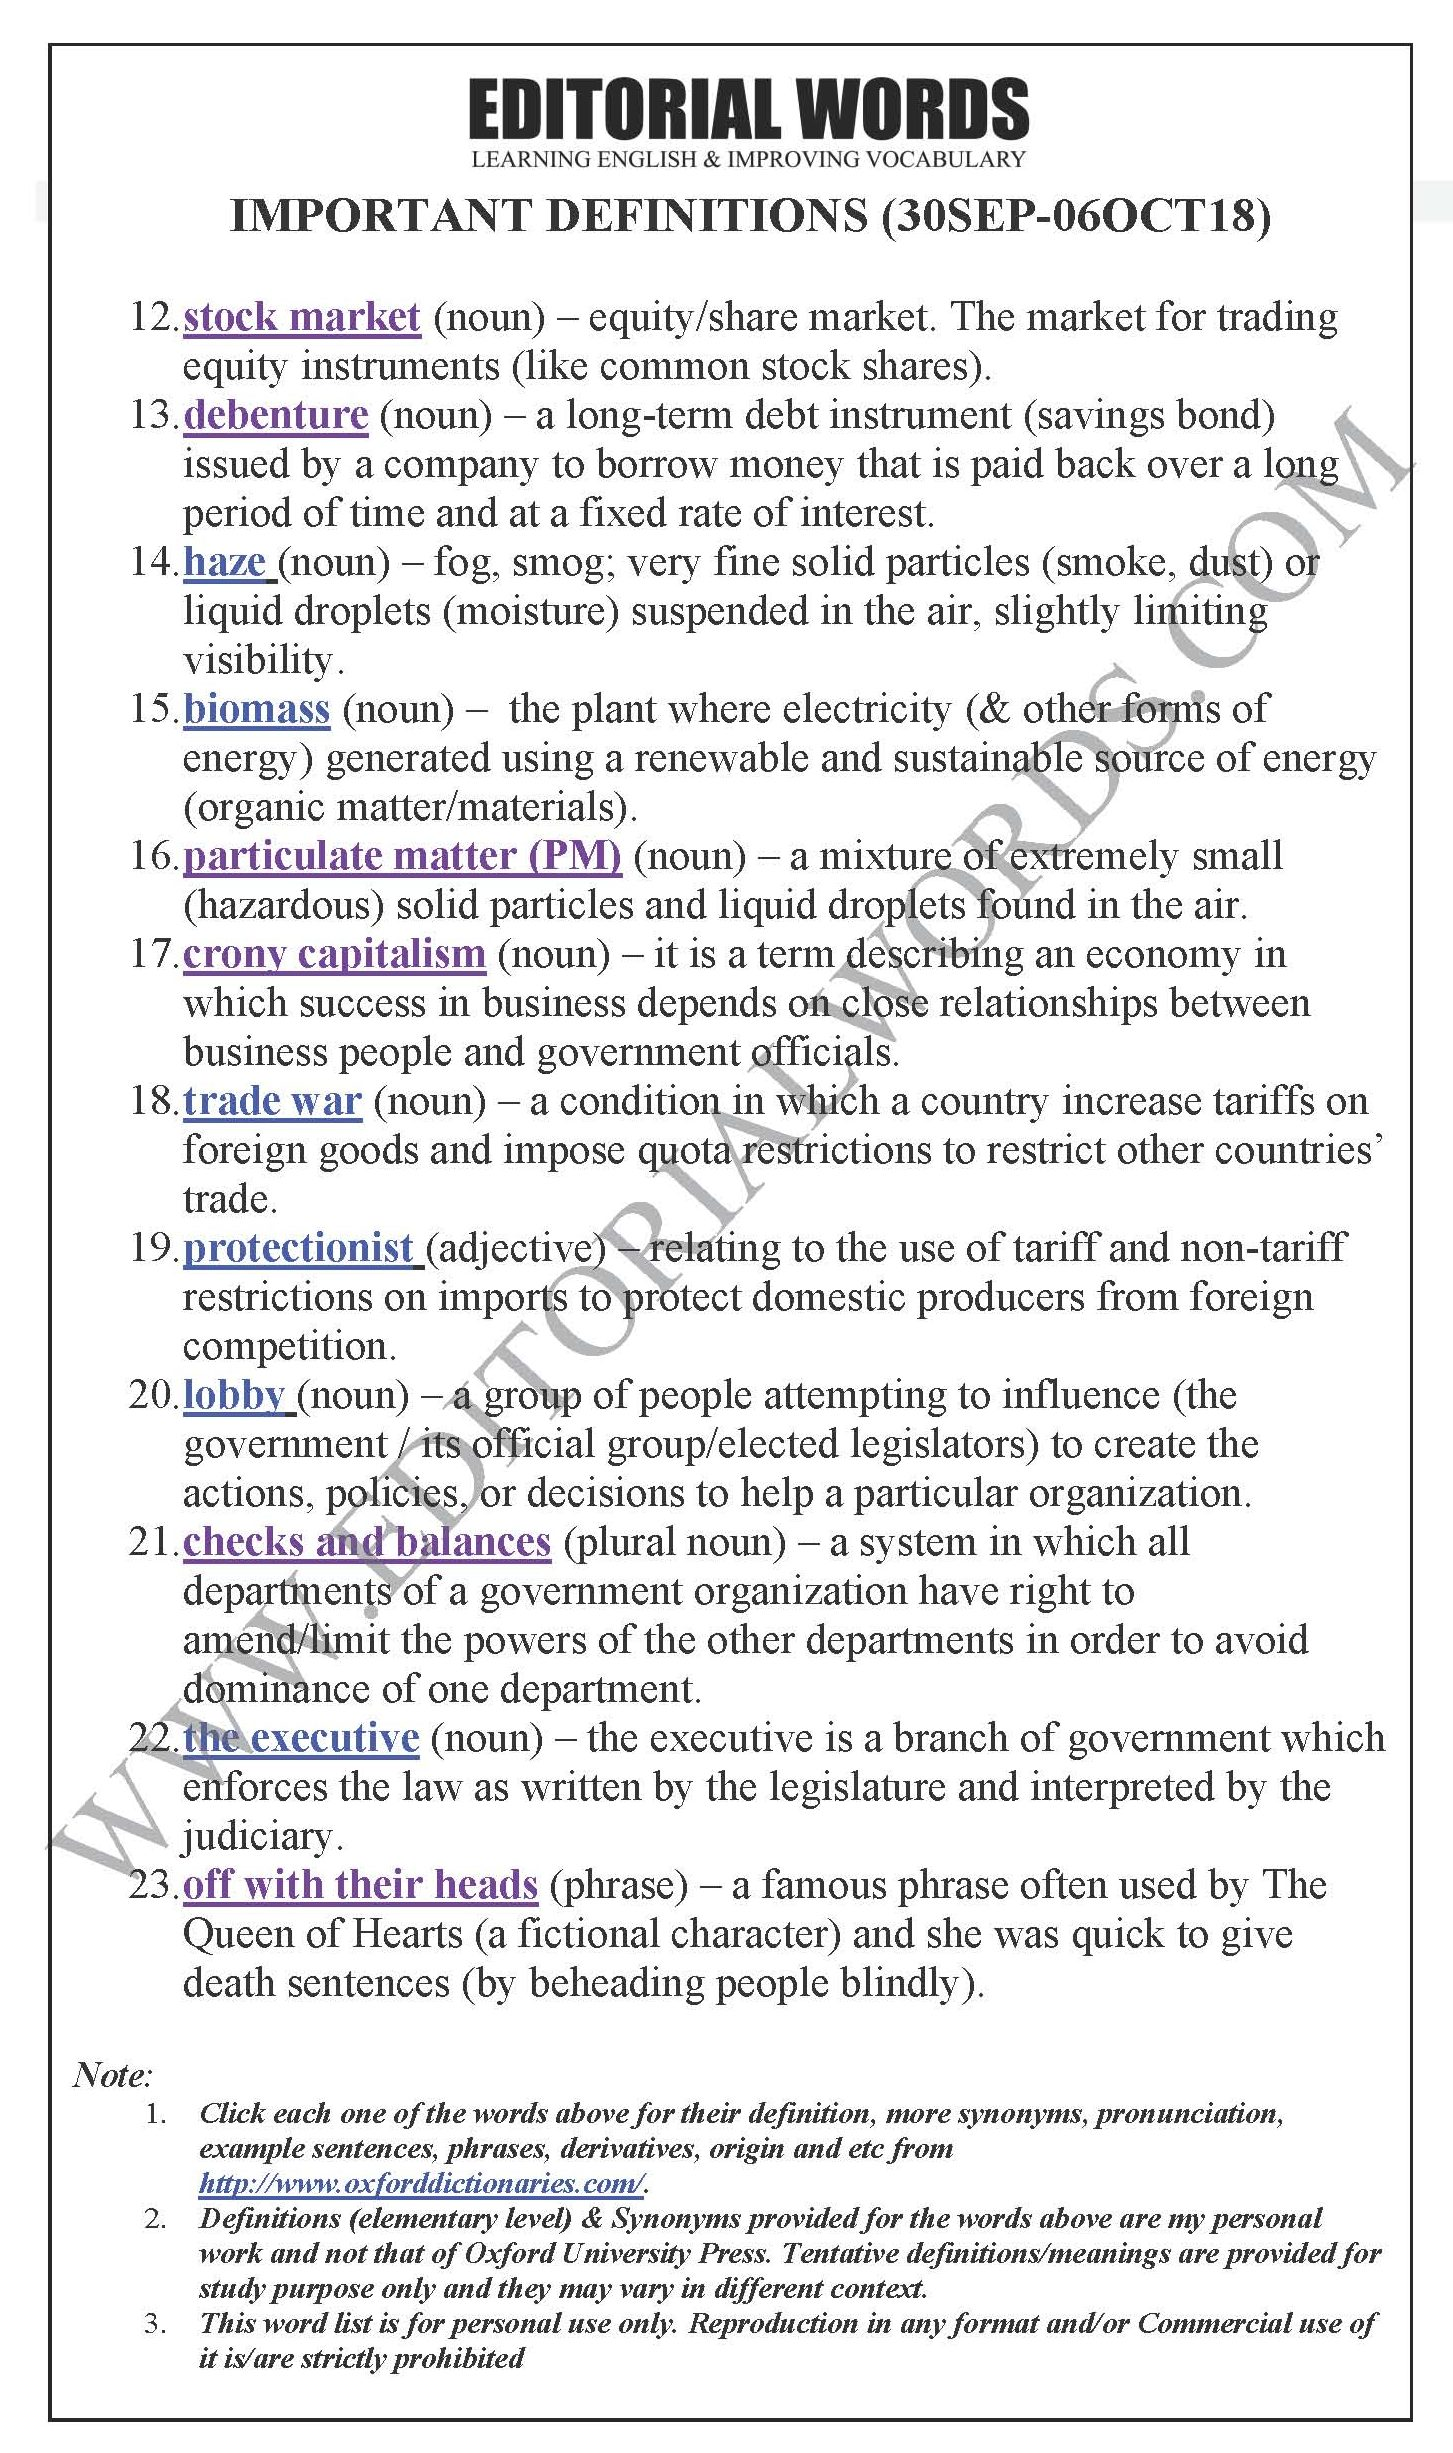 """""""Important Definitions"""" We Learnt Last Week (Sep 30-Oct 06, 2018)"""